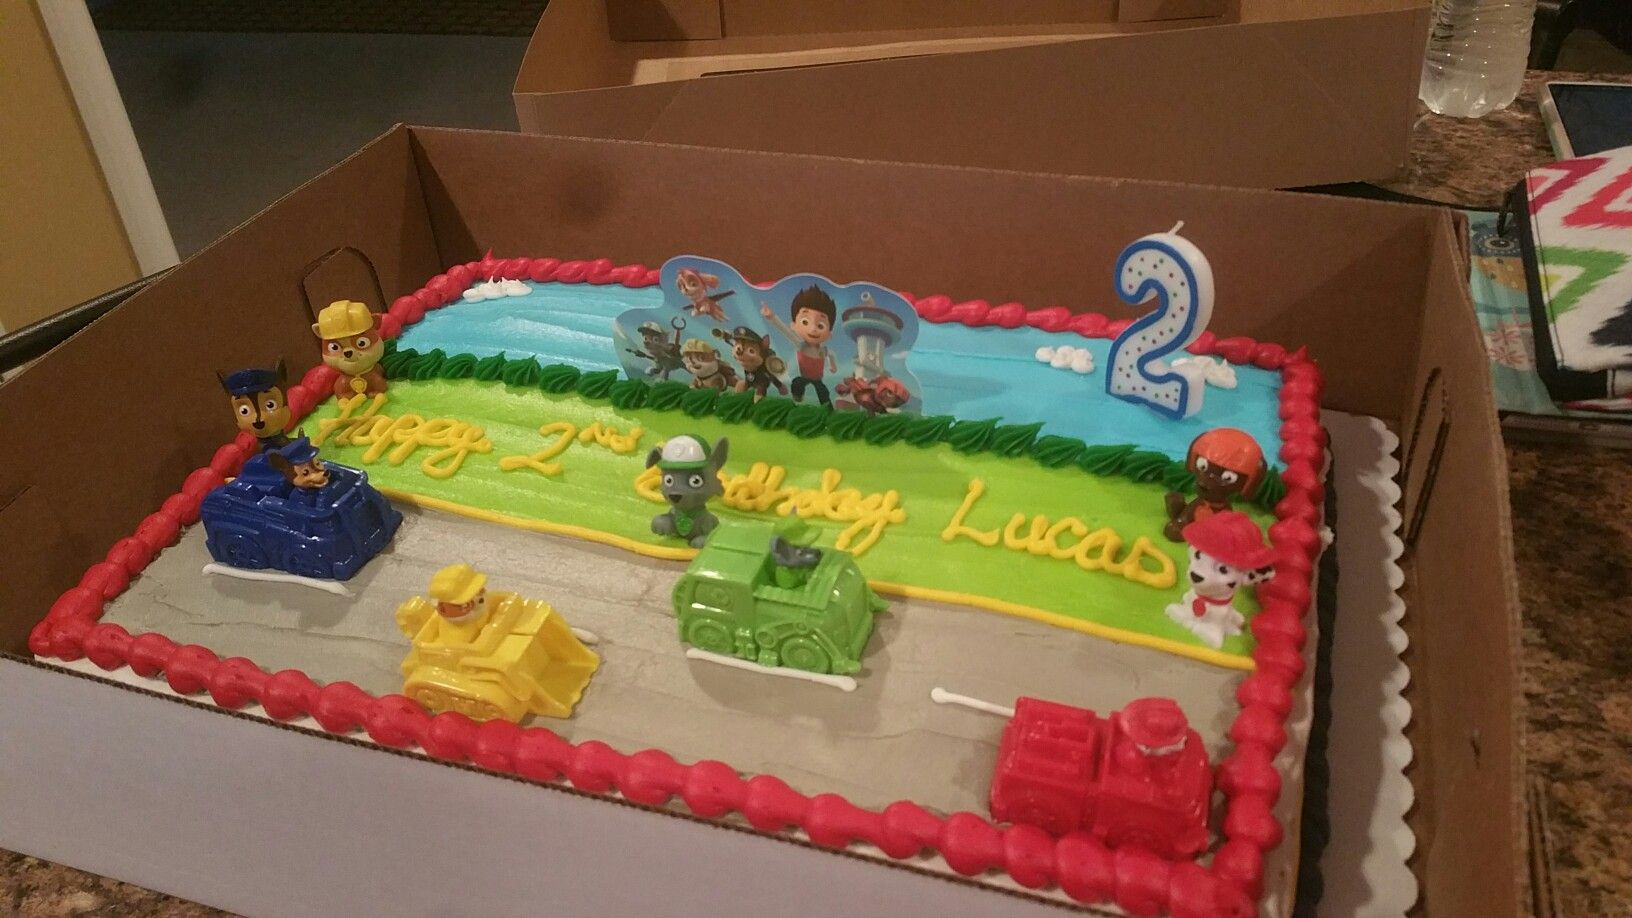 Paw Patrol Cake by sams club but I added my own figures and cars